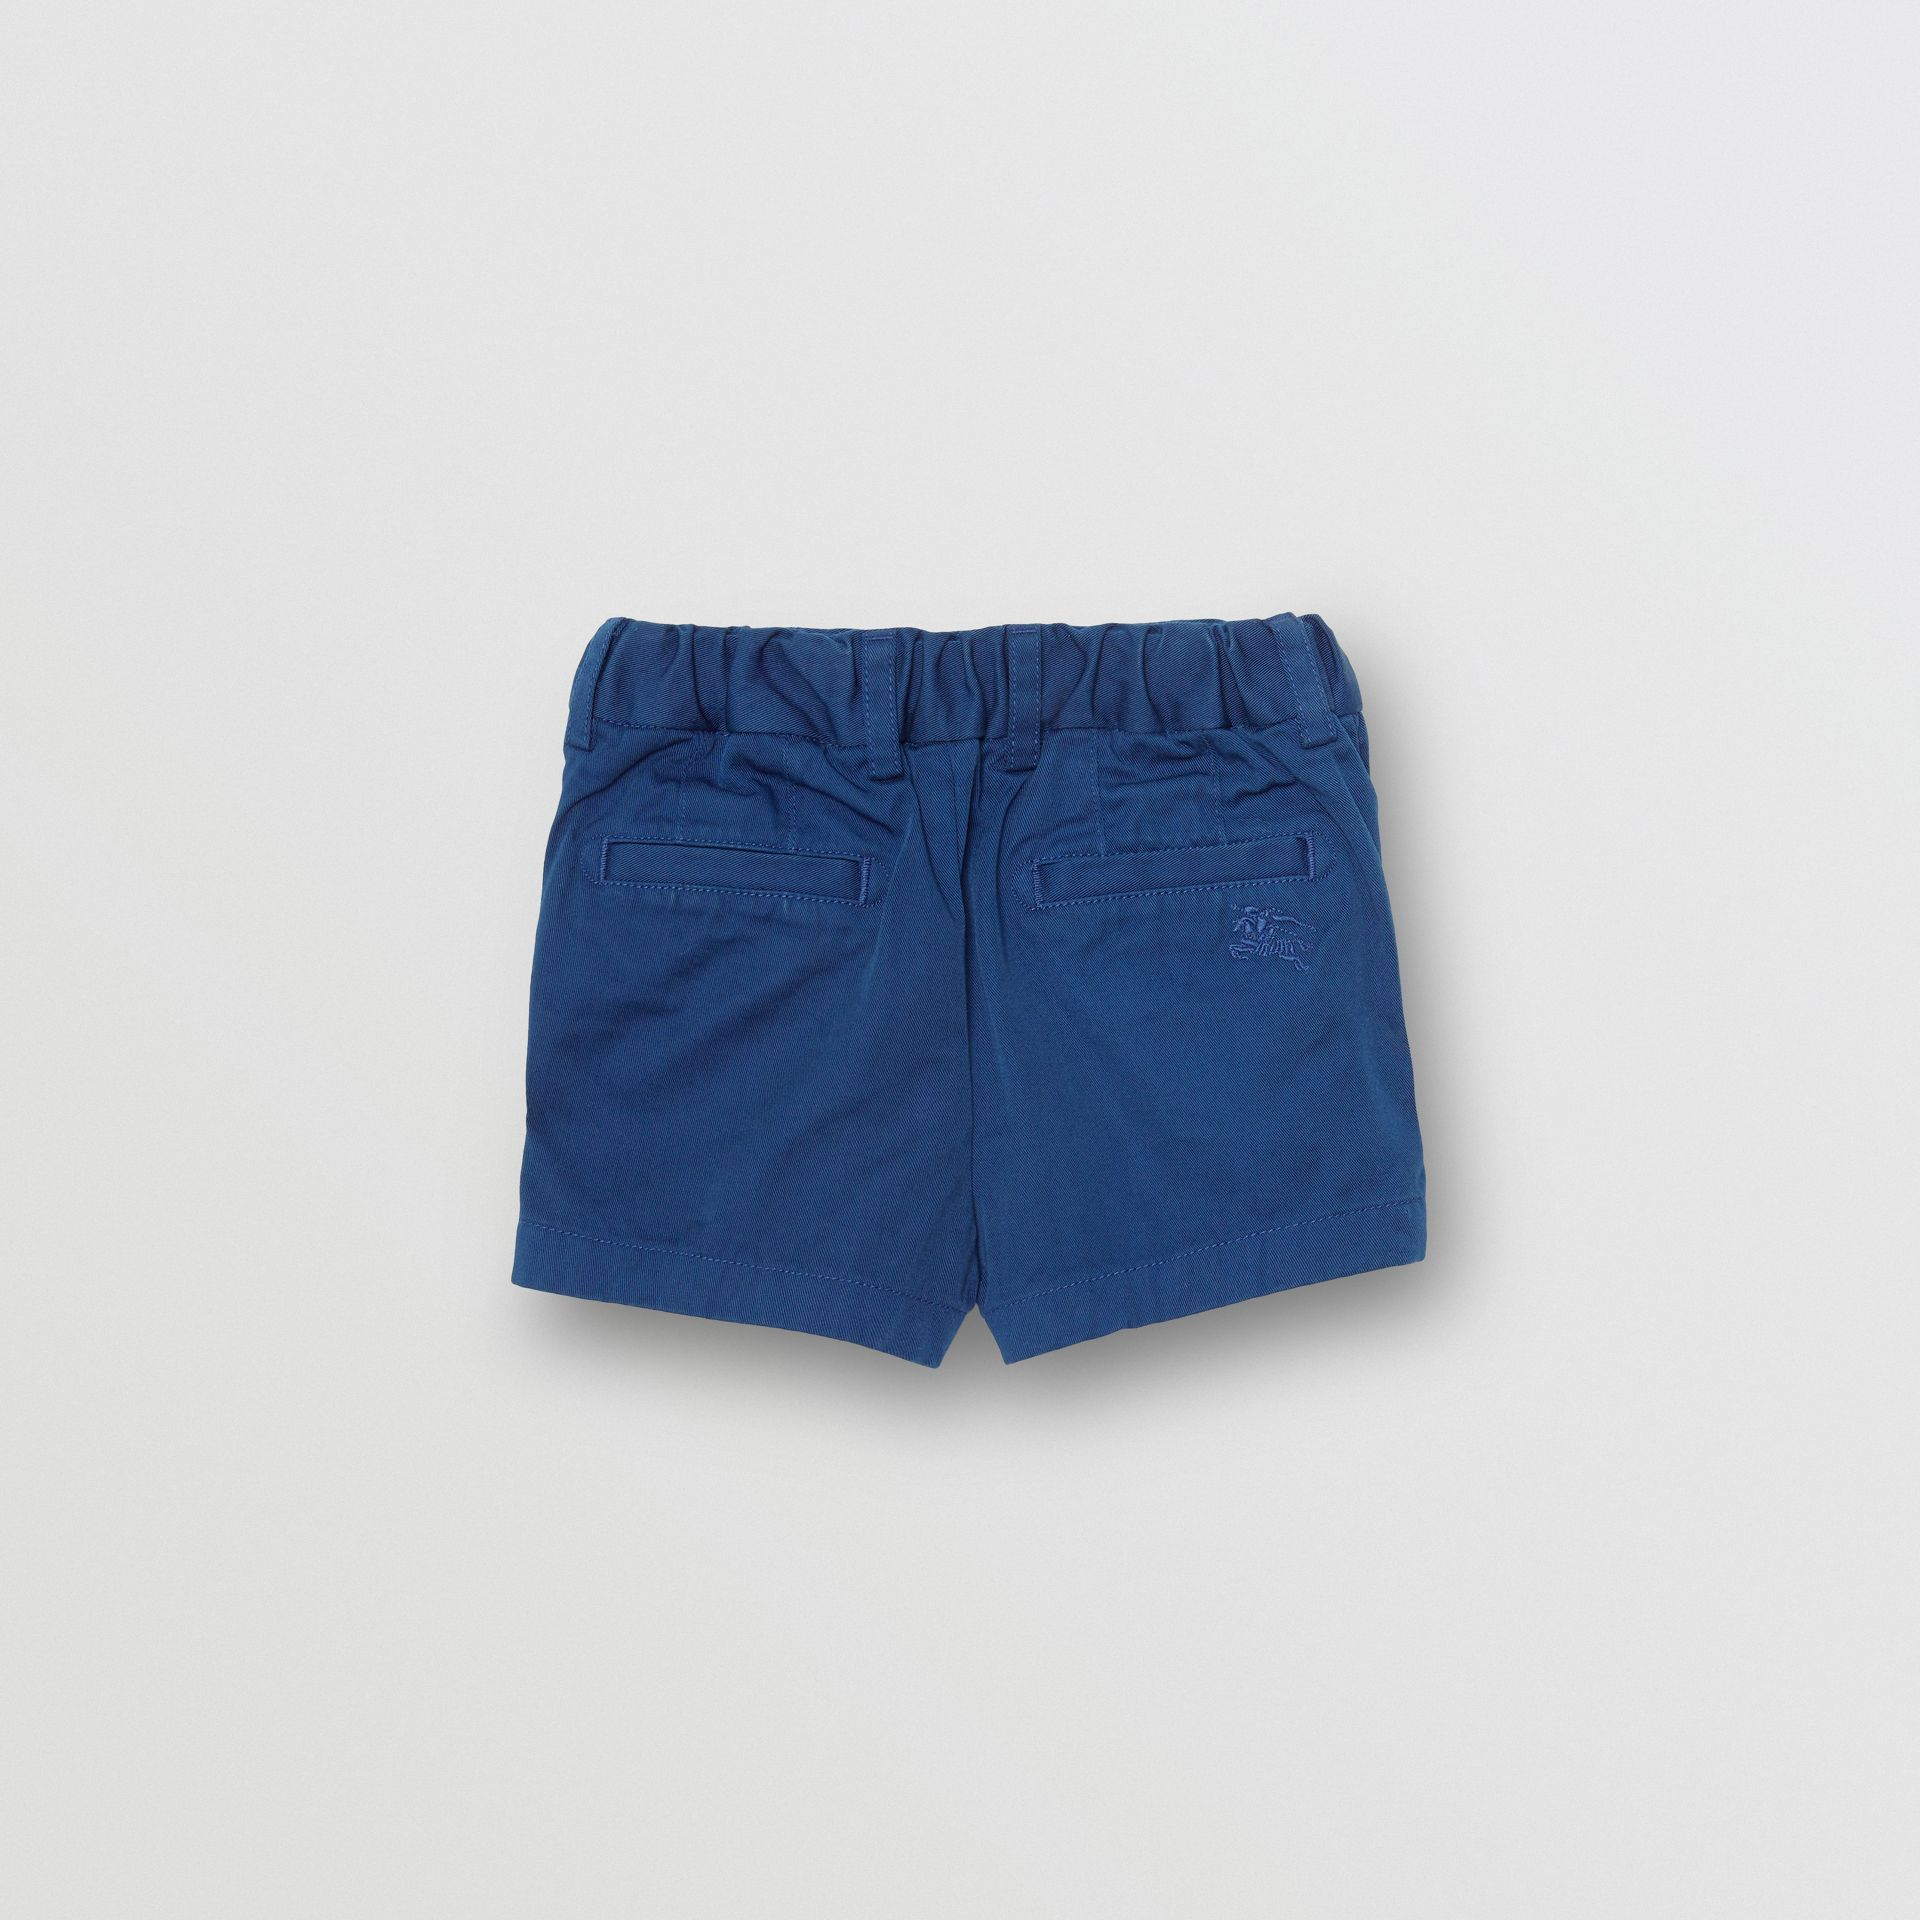 Cotton Chino Shorts in Bright Navy - Children | Burberry United States - gallery image 3